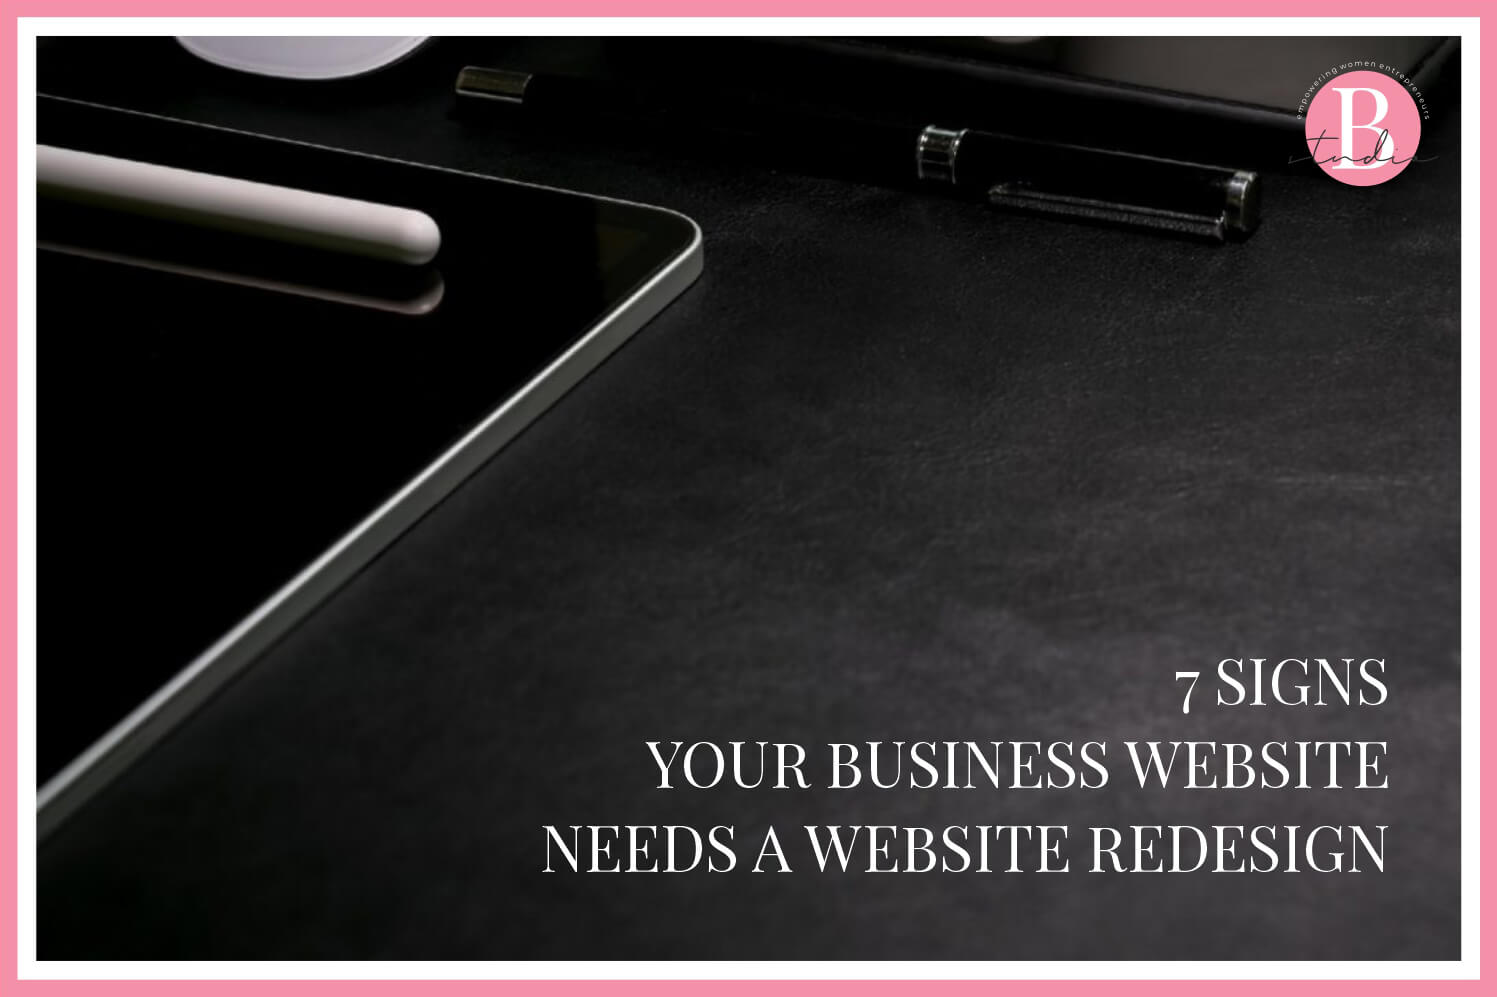 7 Signs your Business Website needs a Website Redesign img